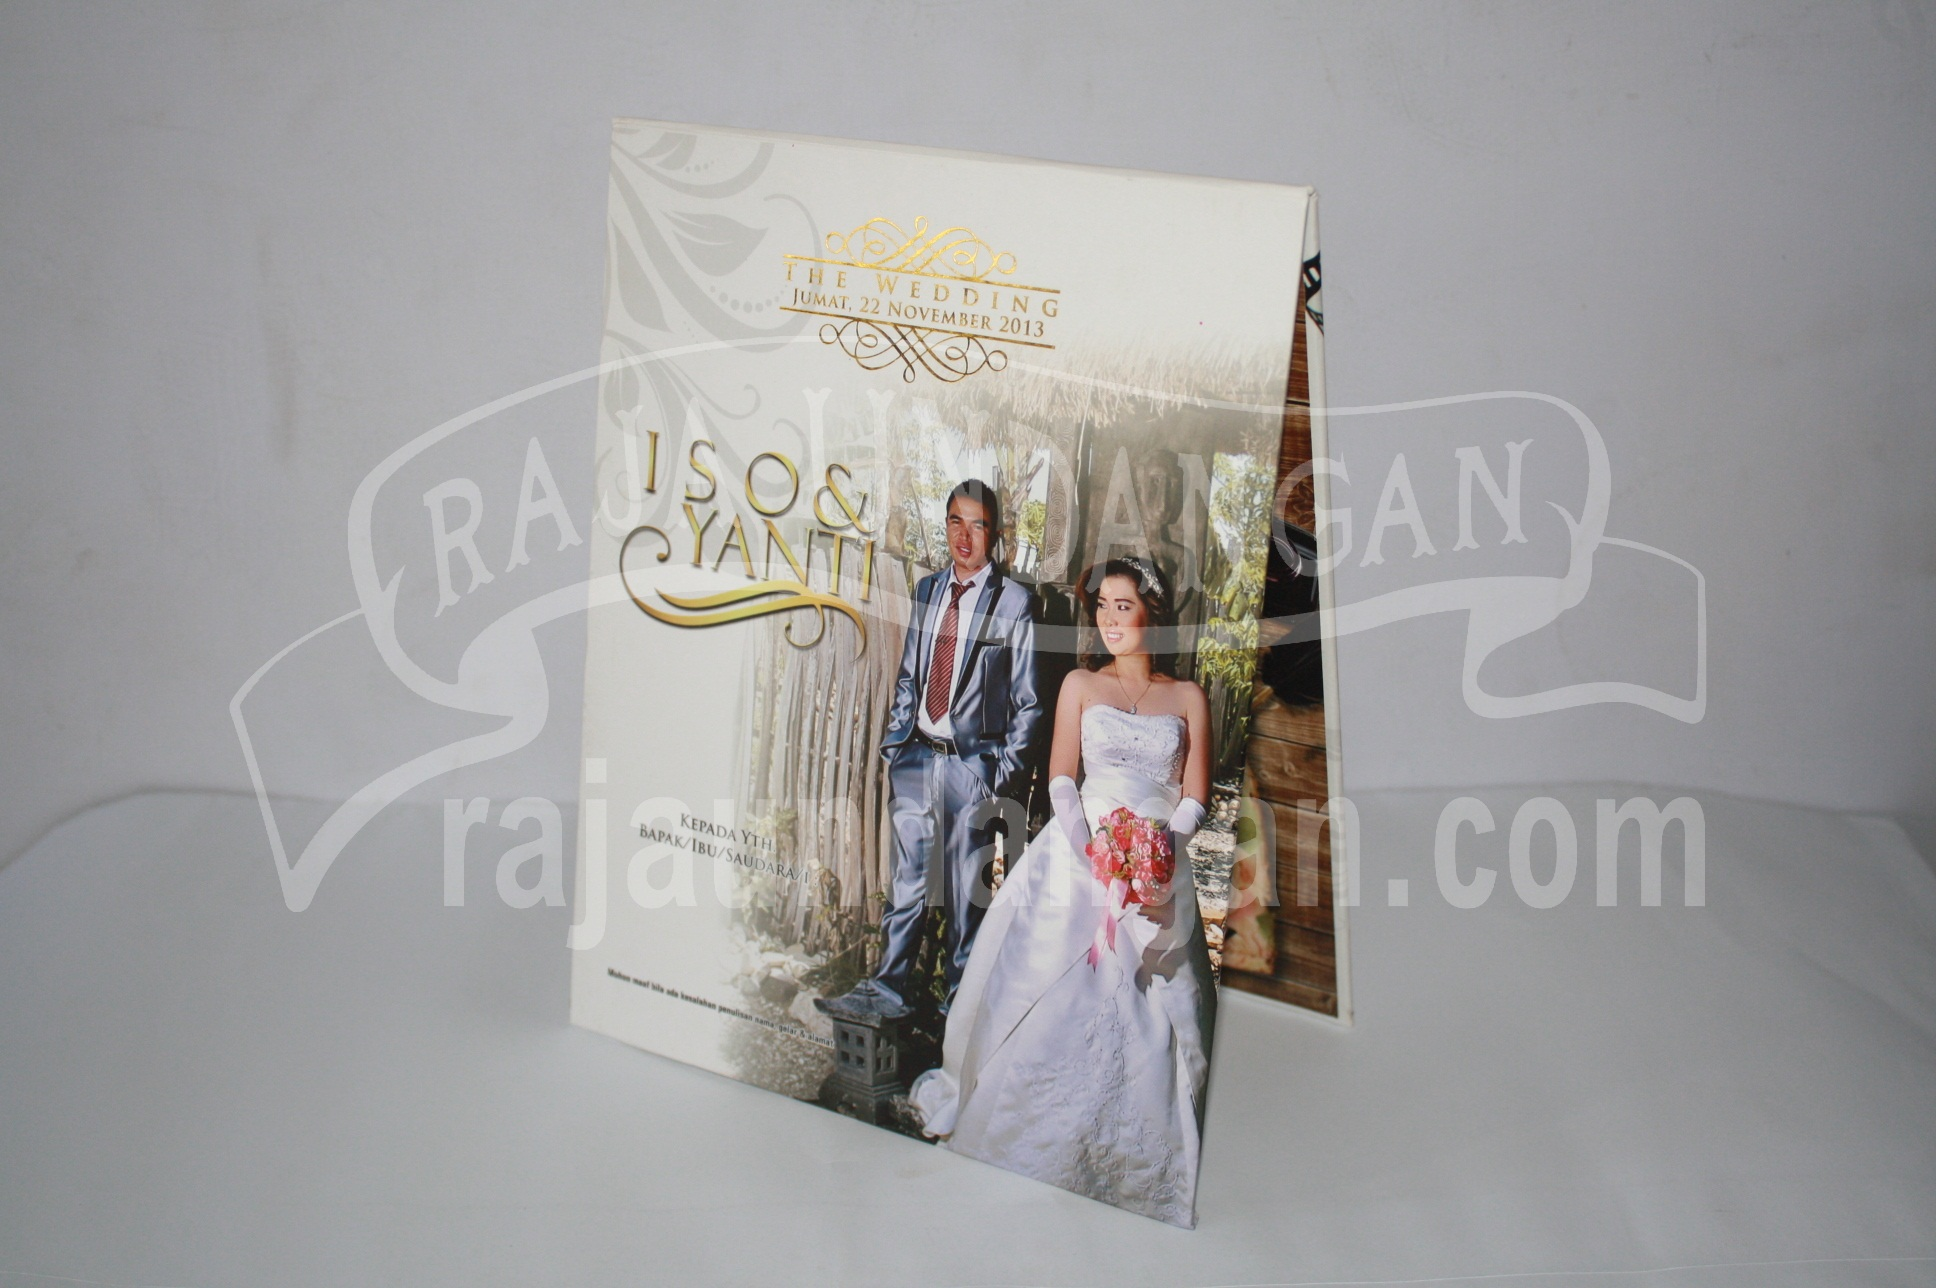 Undangan Pernikahan Hardcover Pop Up Iso dan Yanti EDC 451 - Pesan Wedding Invitations Eksklusif di Karang Poh